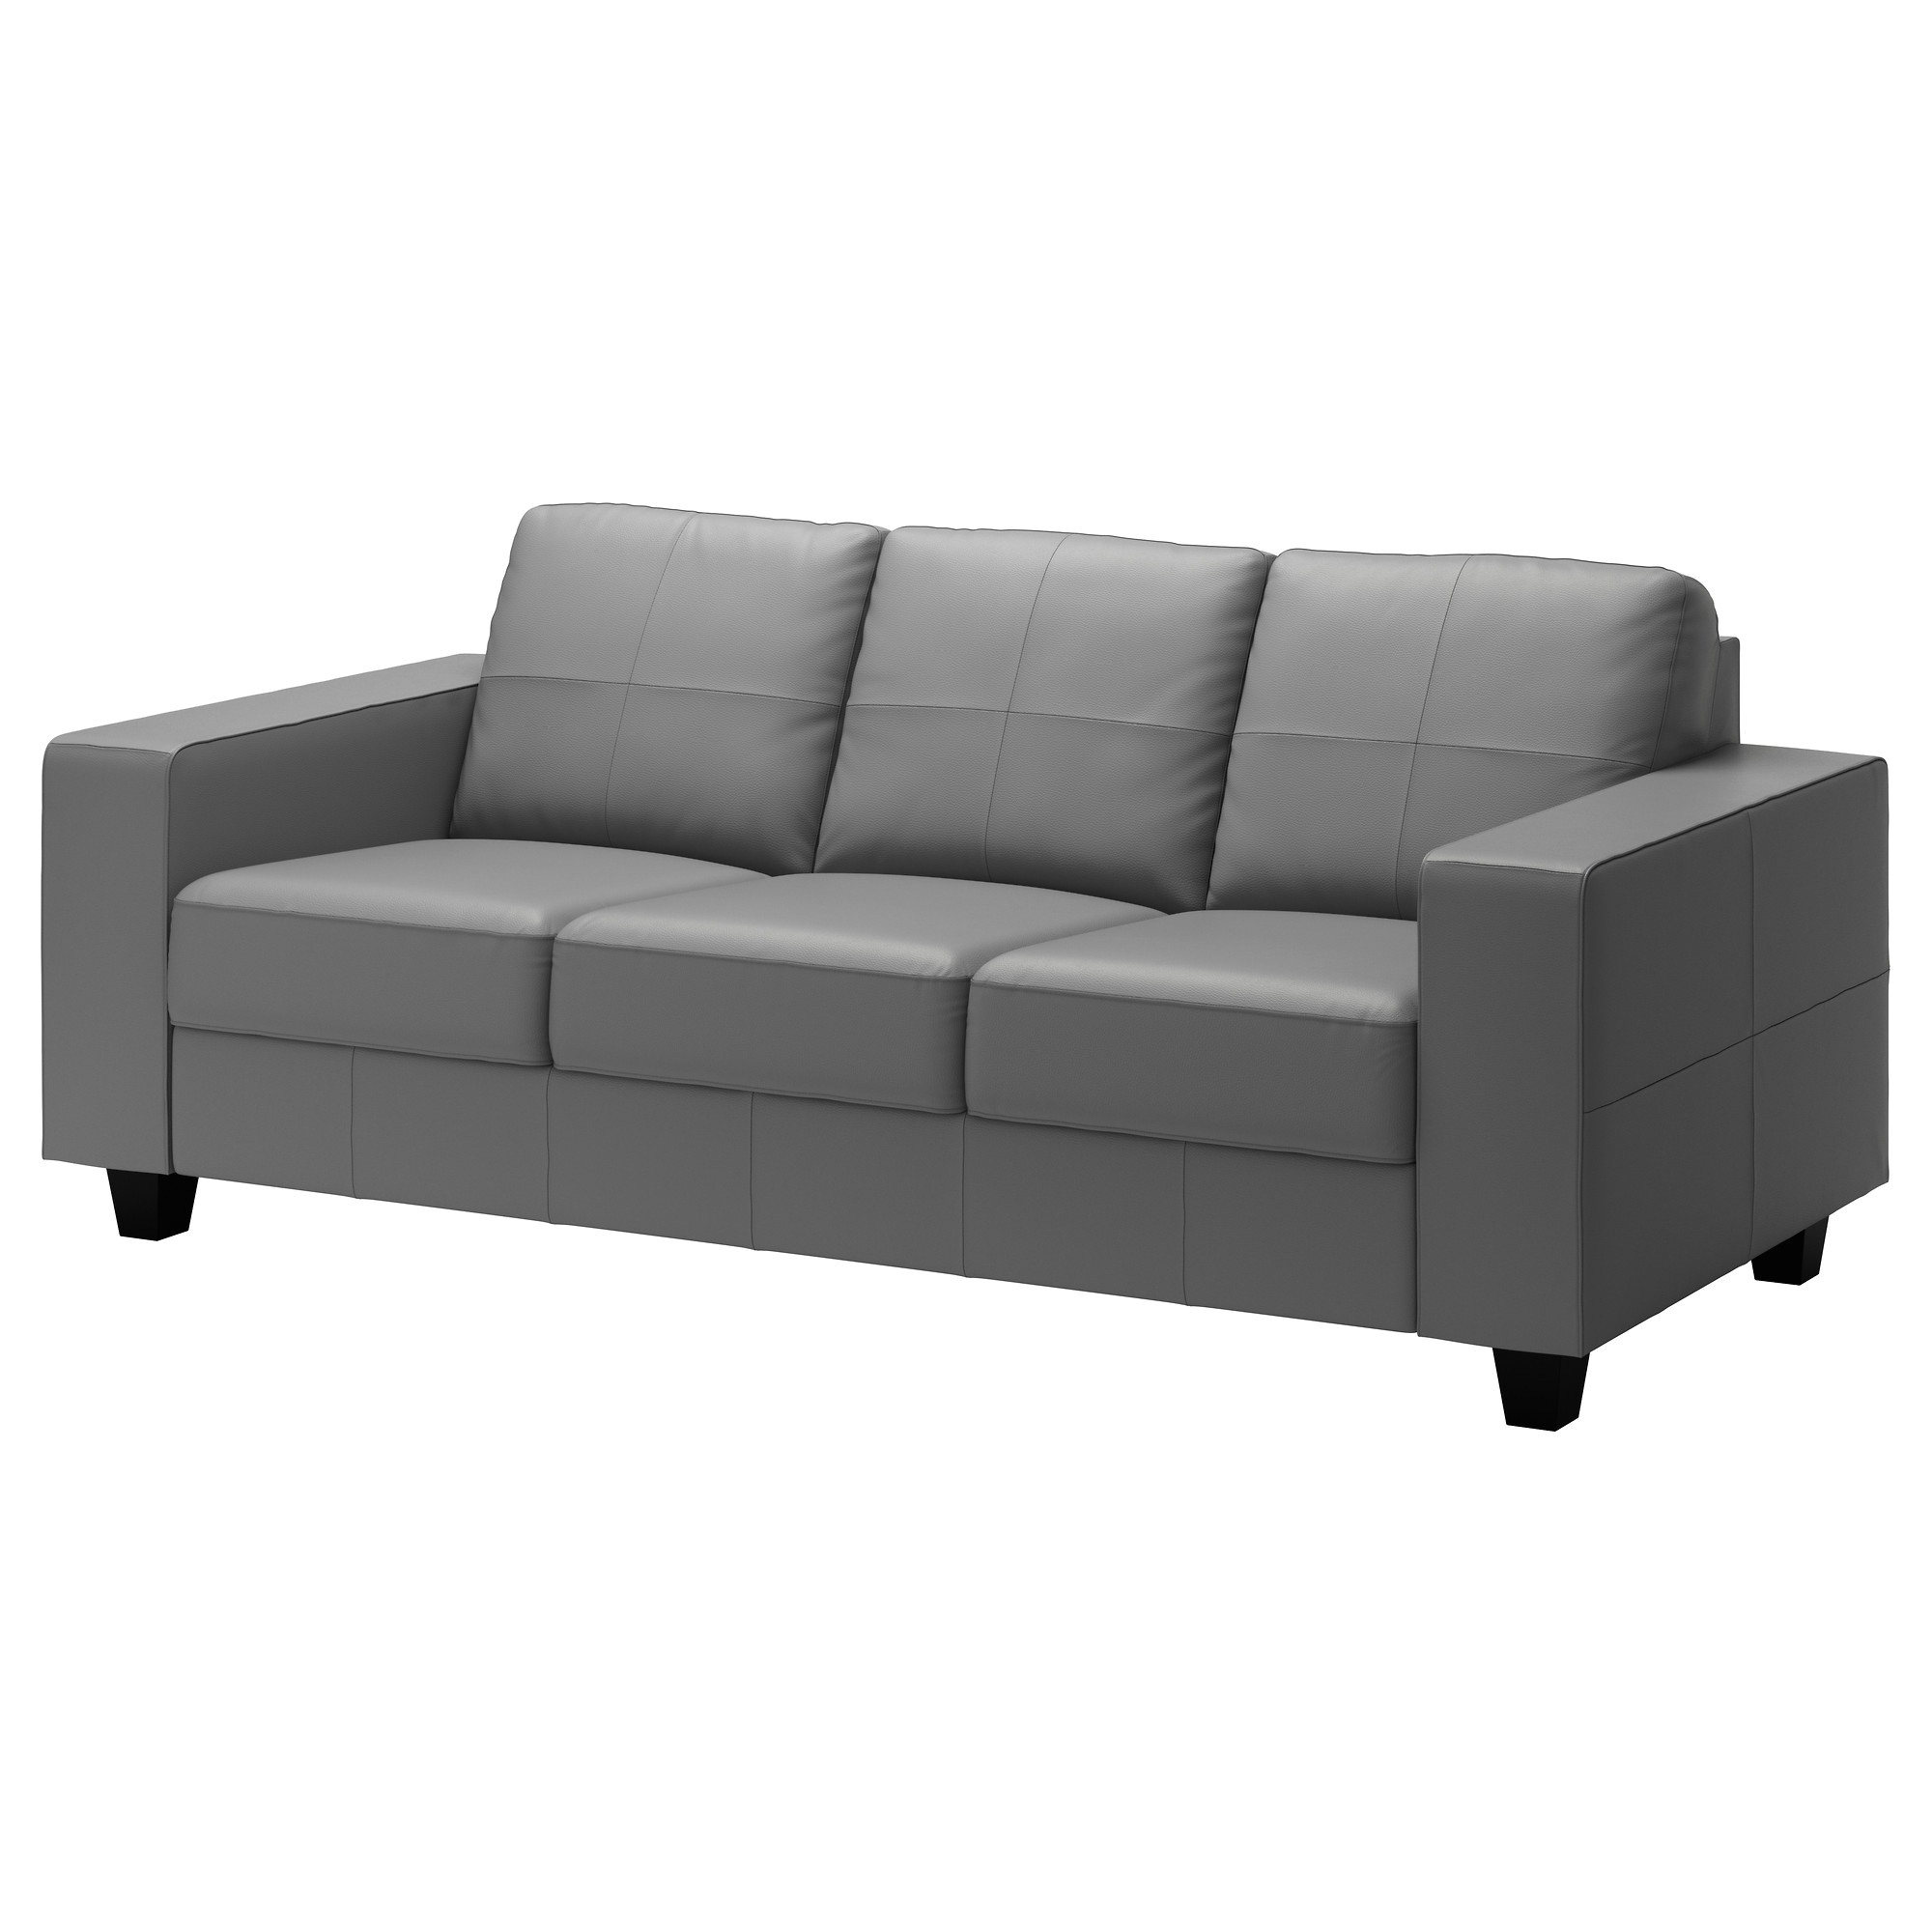 futon sofa ikea einzigartig furniture friheten sofa bed review ikea futon sofa ikea pull in pull